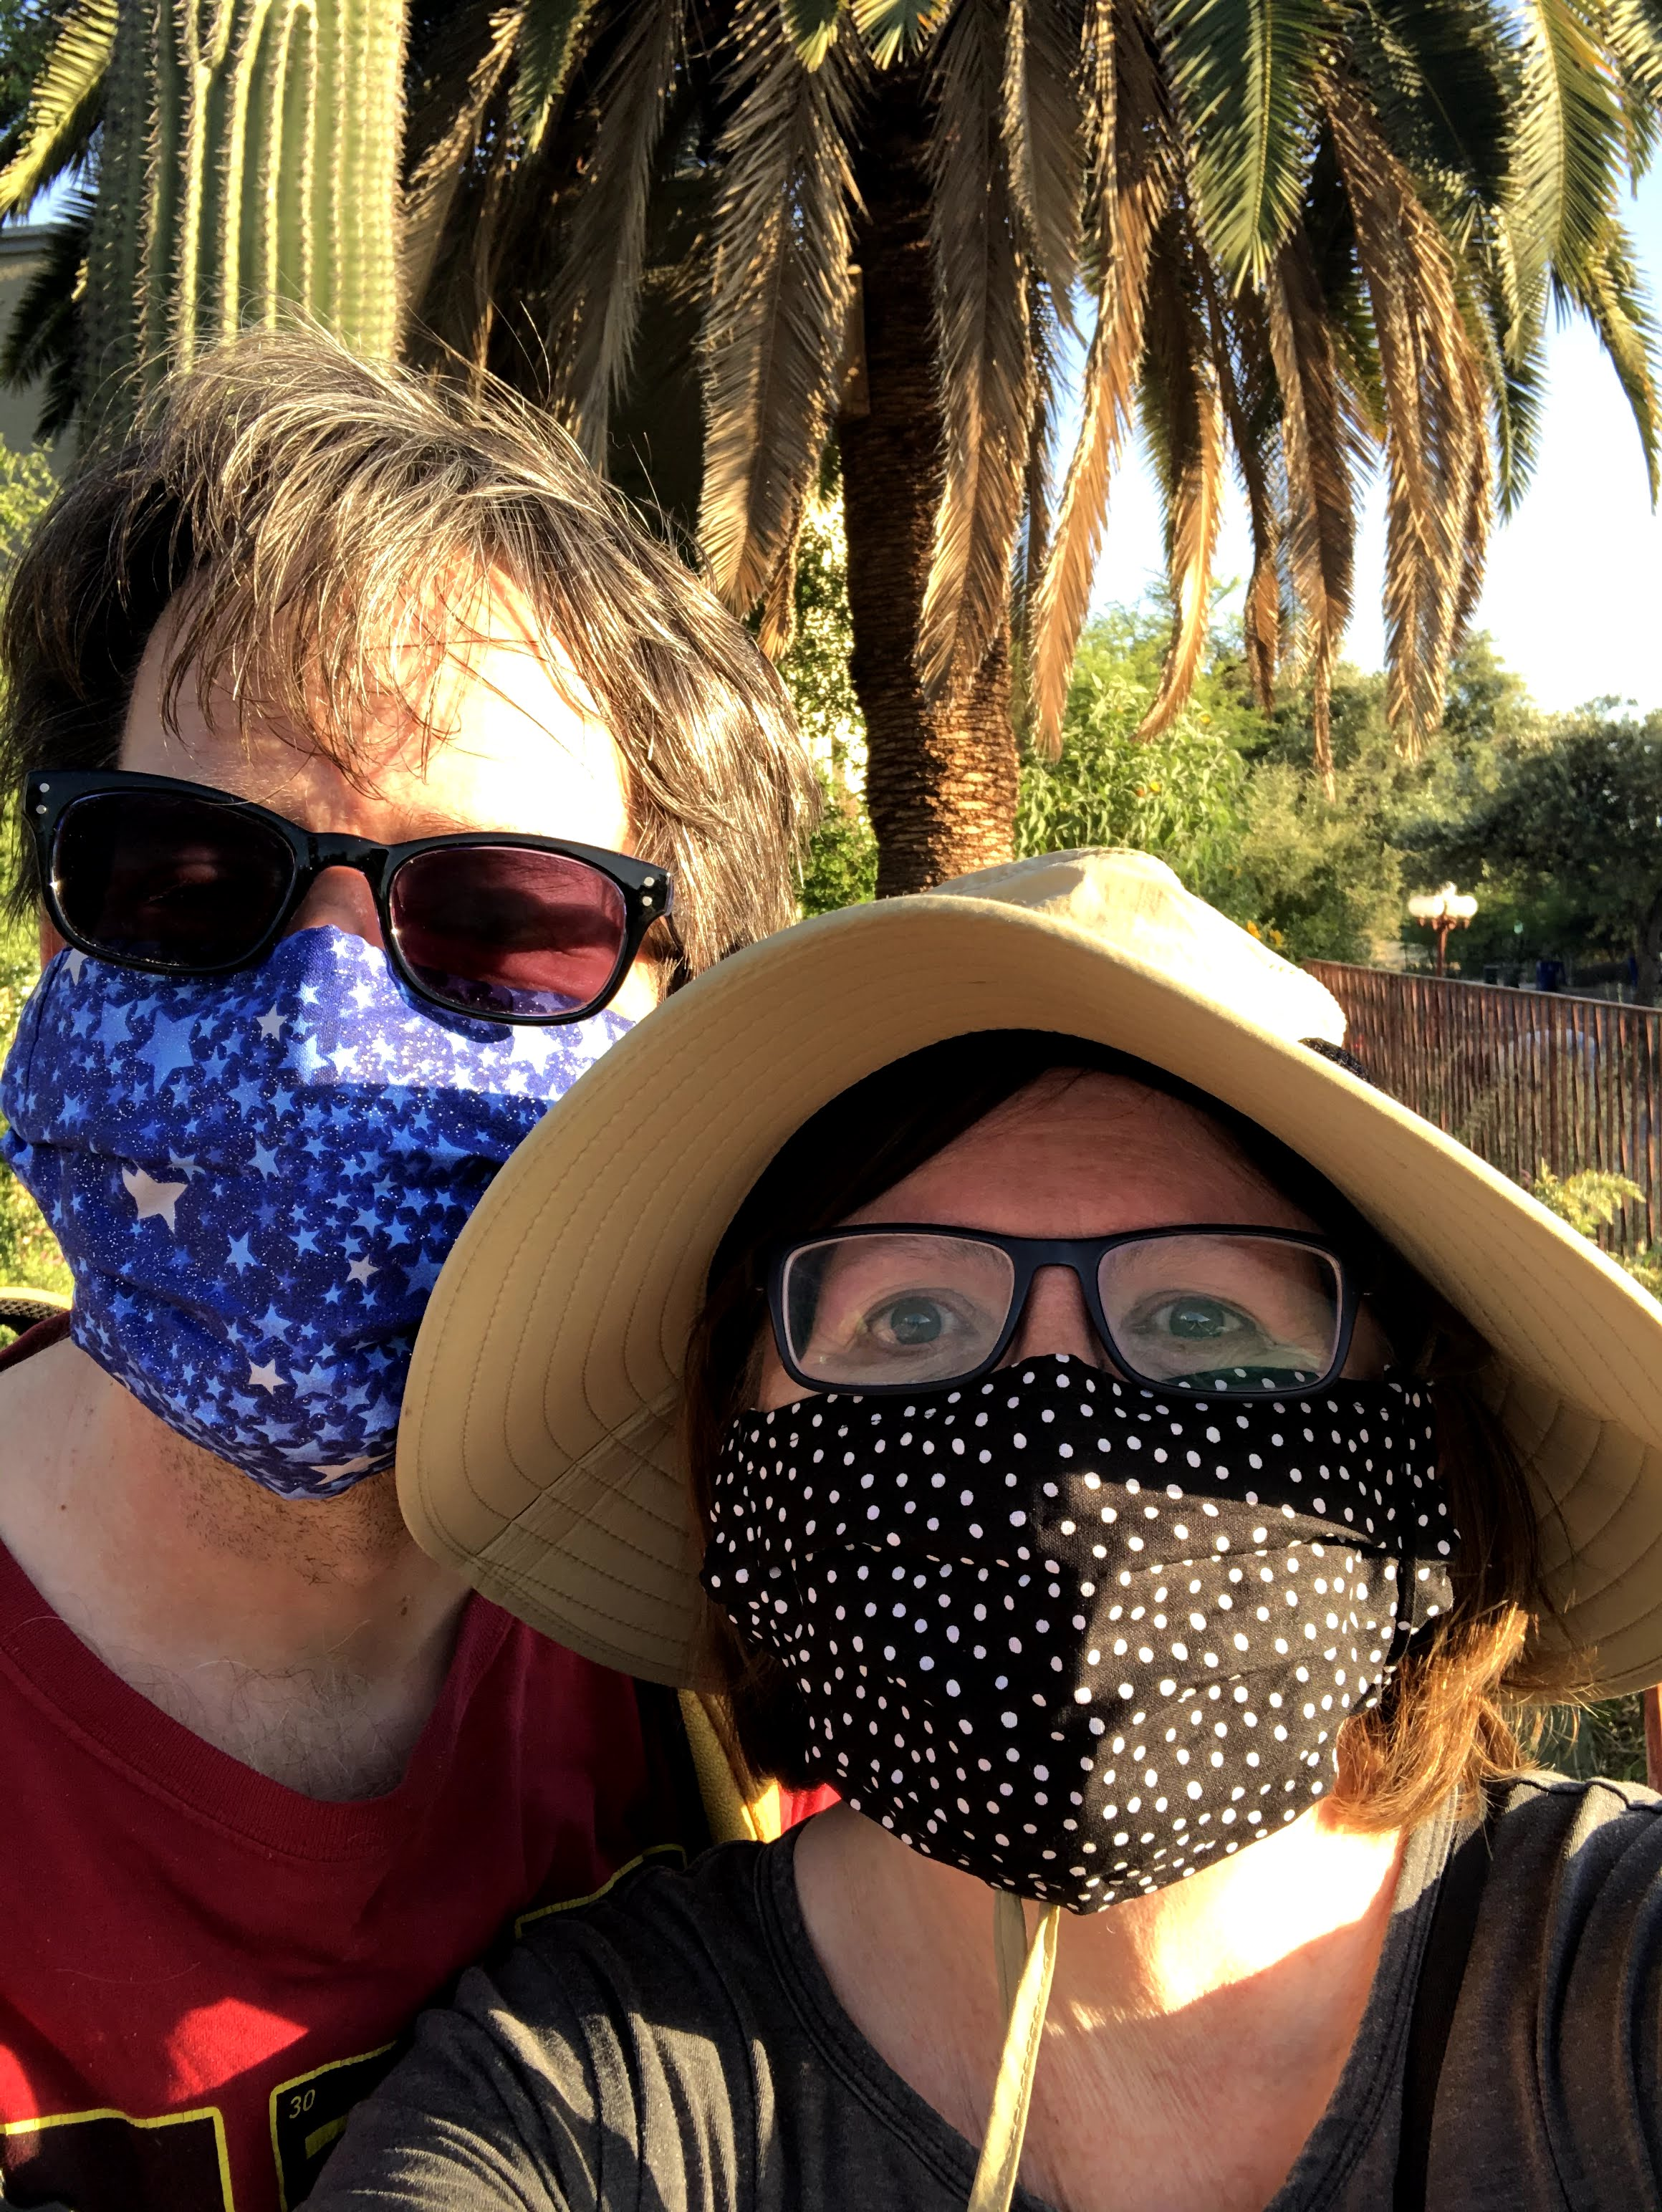 James and Nicole with face masks from Etsy.